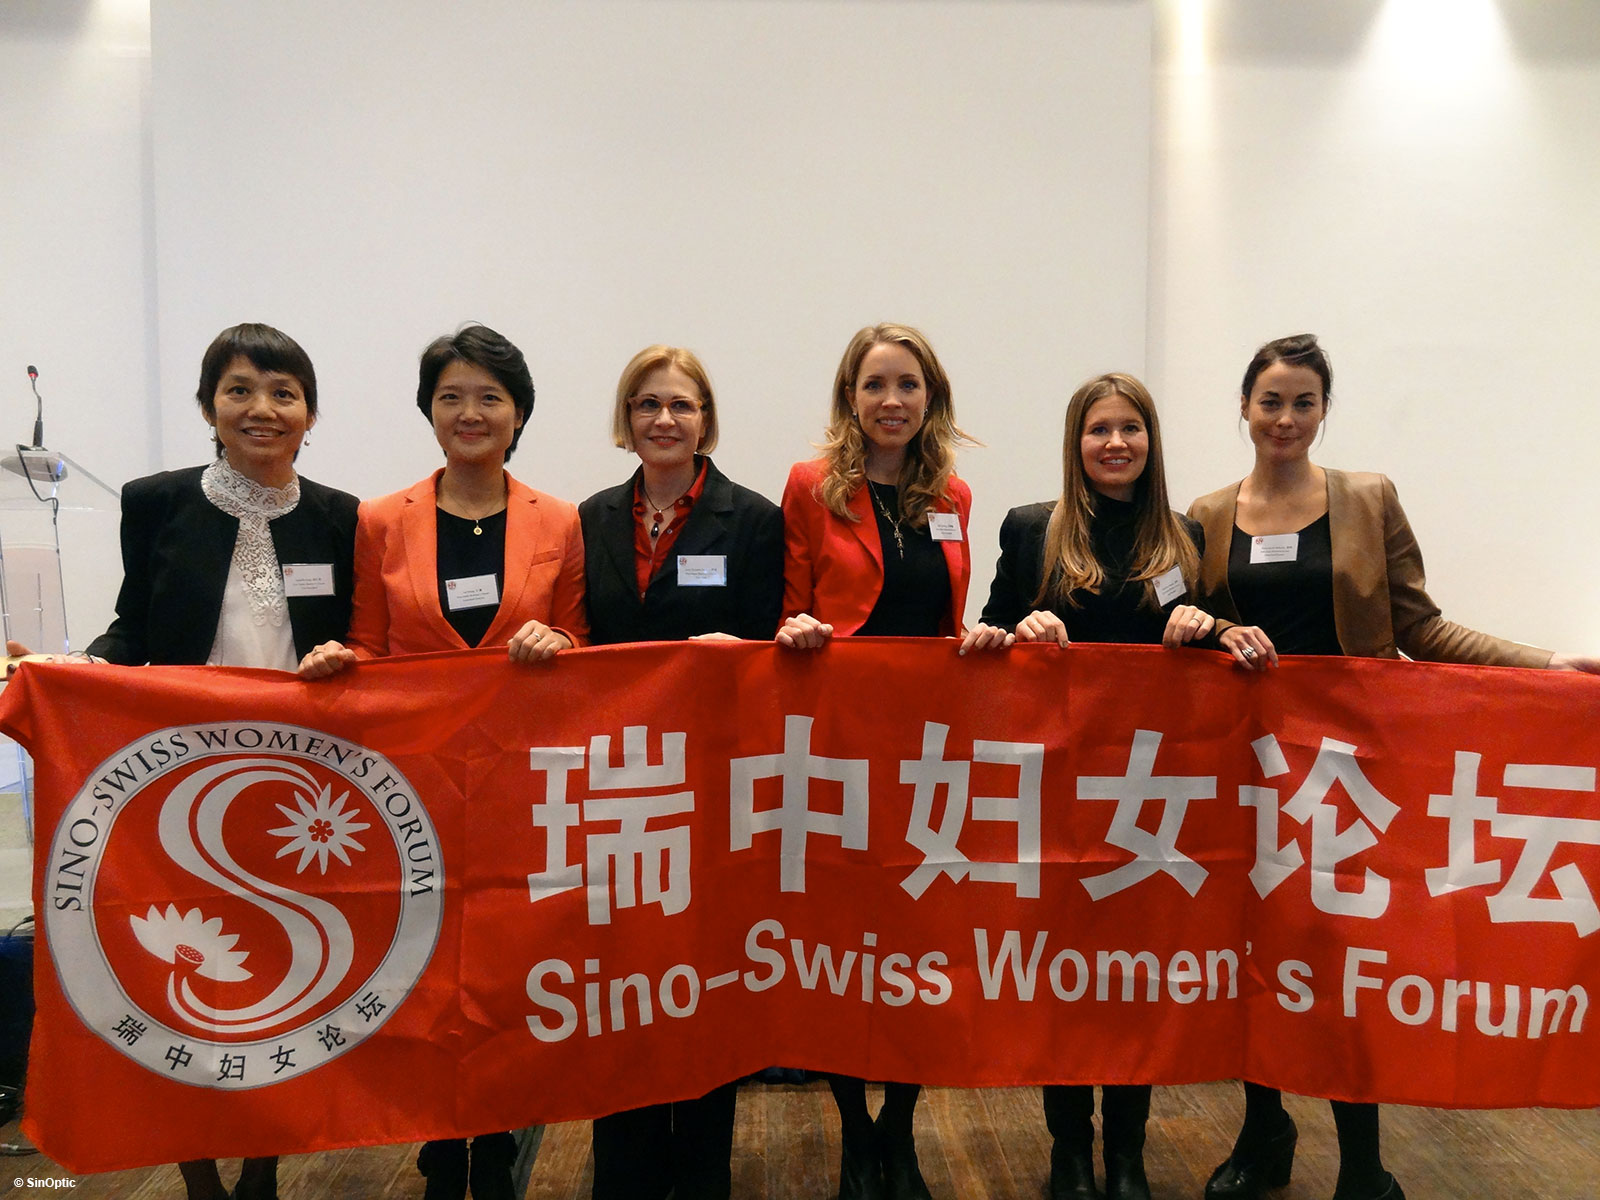 Sino-Swiss Women's Forum (SSWF) - Opportunities beyond culture: Women in leadership